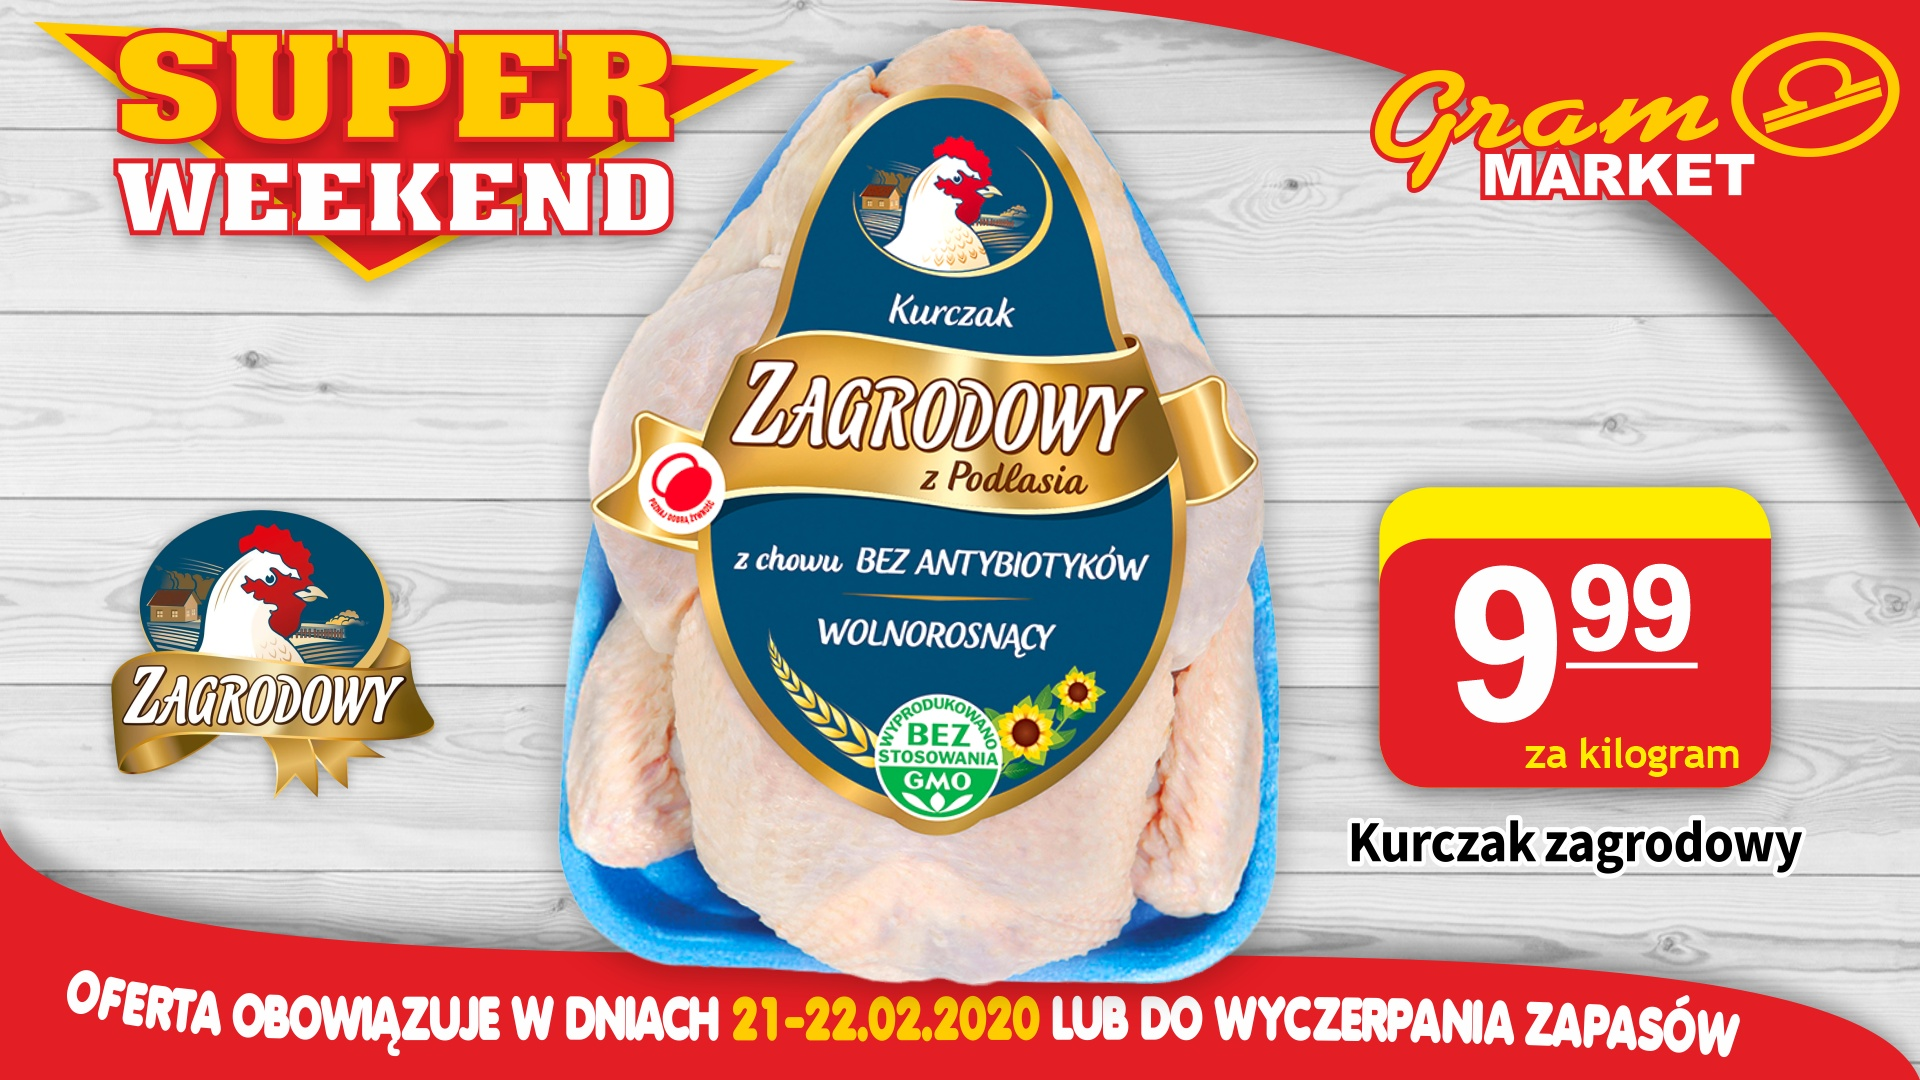 SUPER_WEEKEND-21-22-4